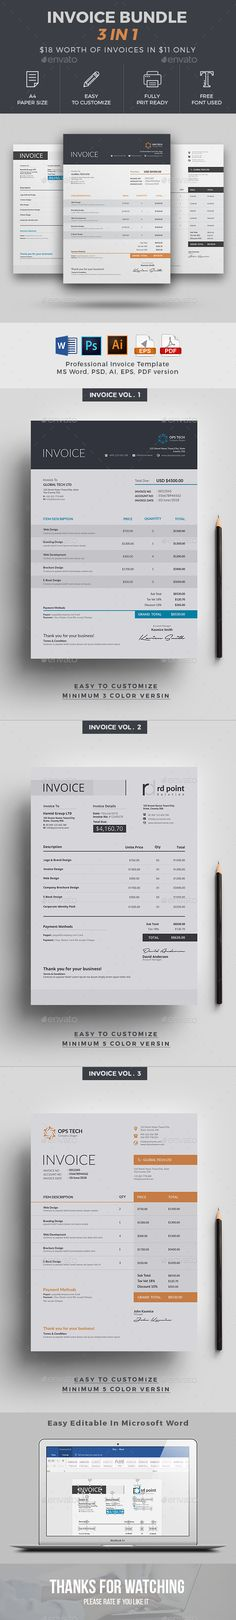 The Proposal Download, Stationery and Corpus - website proposal template